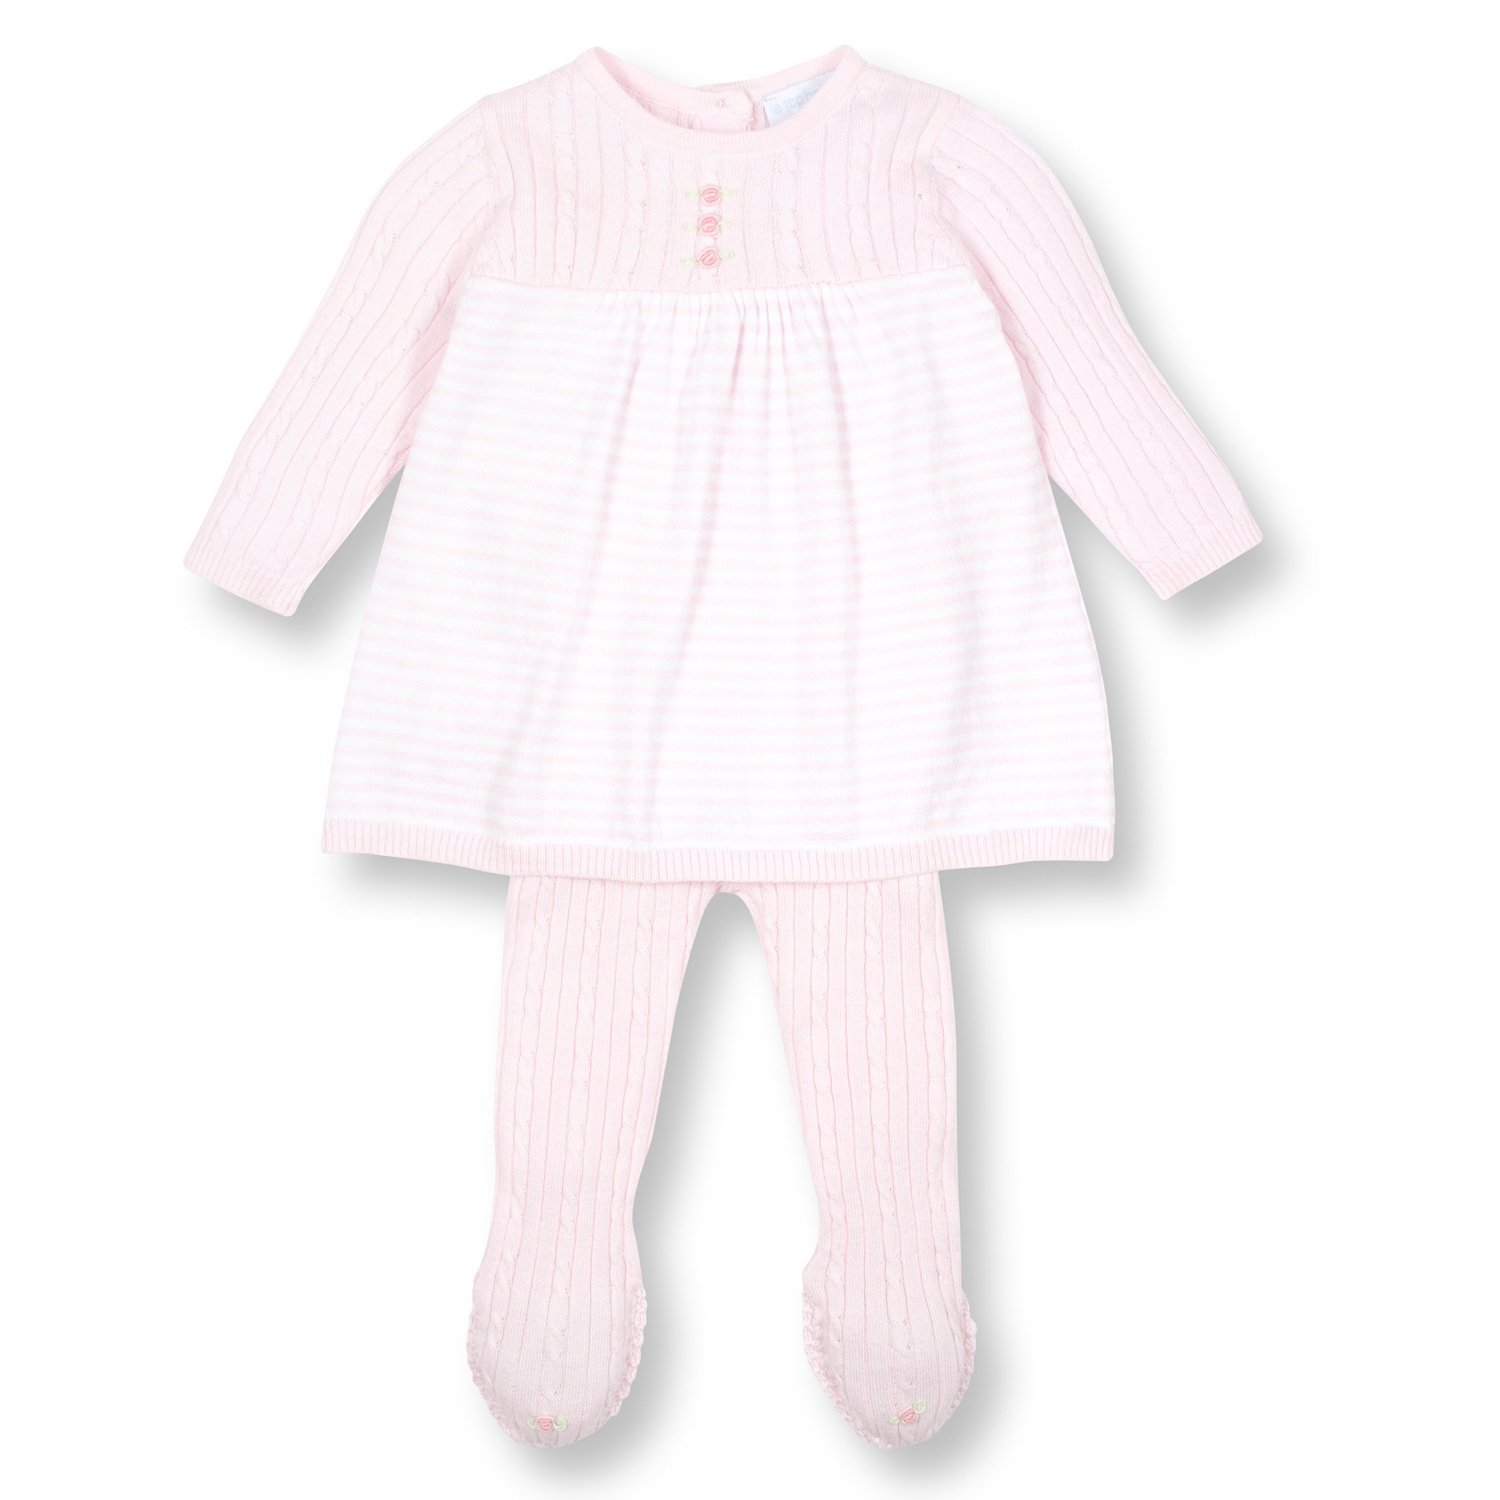 Le Top Bébé Knit Dress and Legging Set for Newborn and Baby Girls